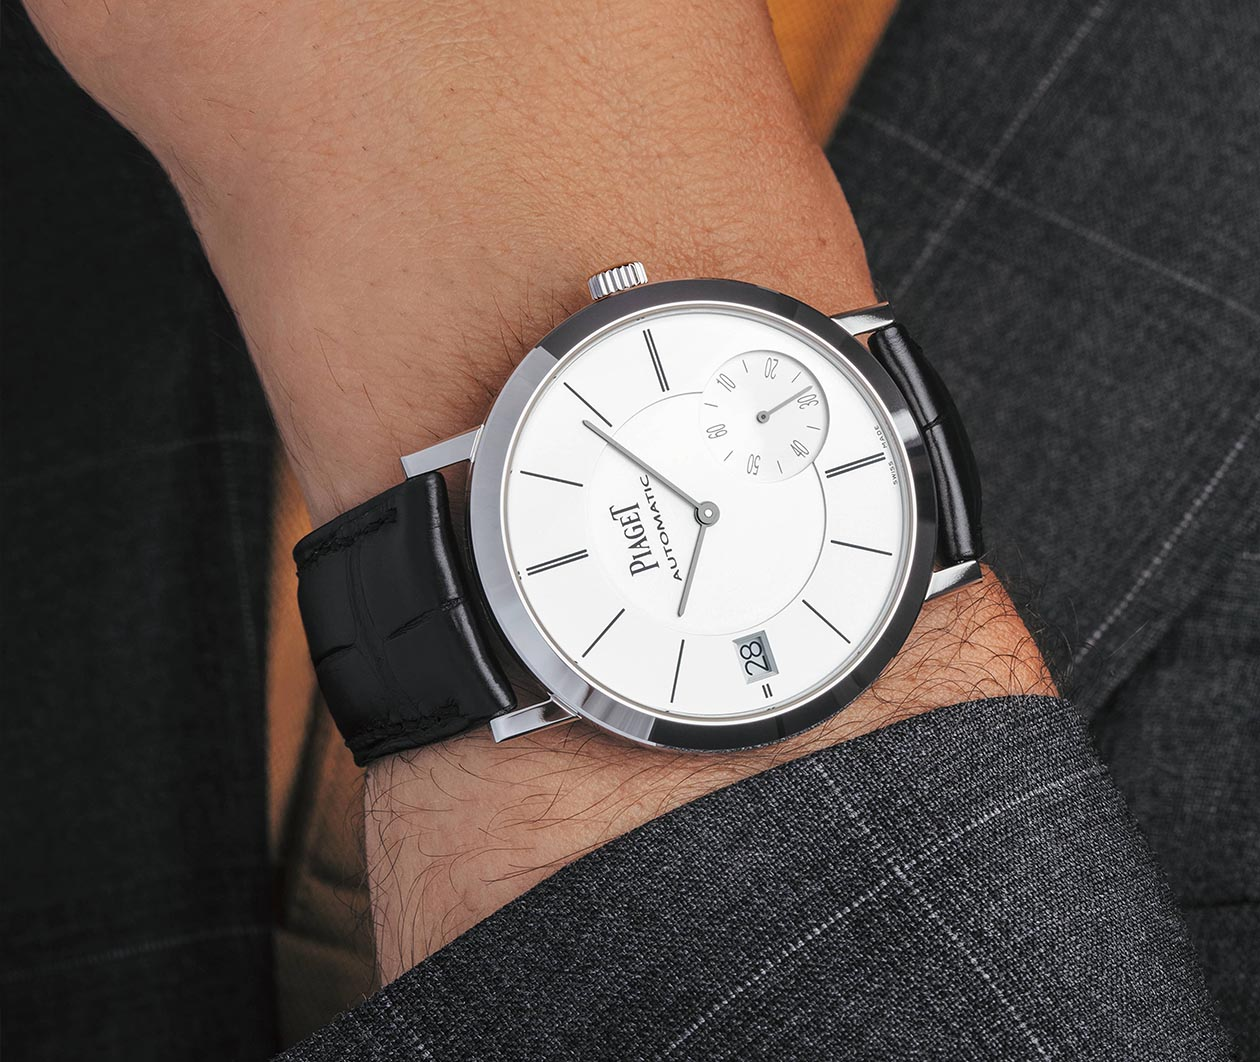 Piaget Altiplano watch G0A38130 Hover 2 FINAL